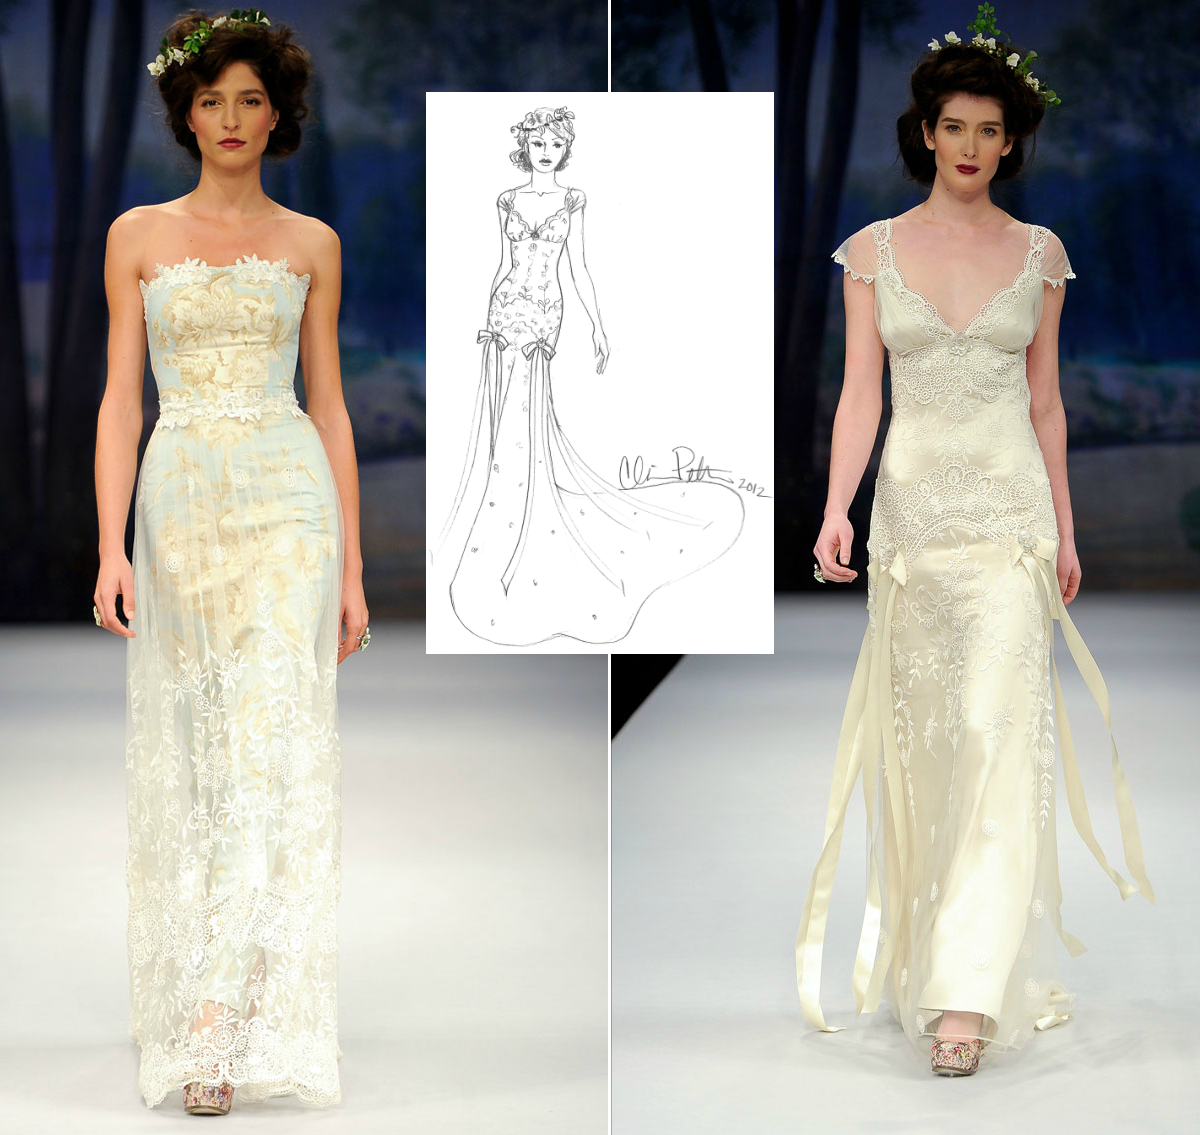 ... -dress-sketch-anne-hathaway-celebrity-wedding.original.png?1379115406